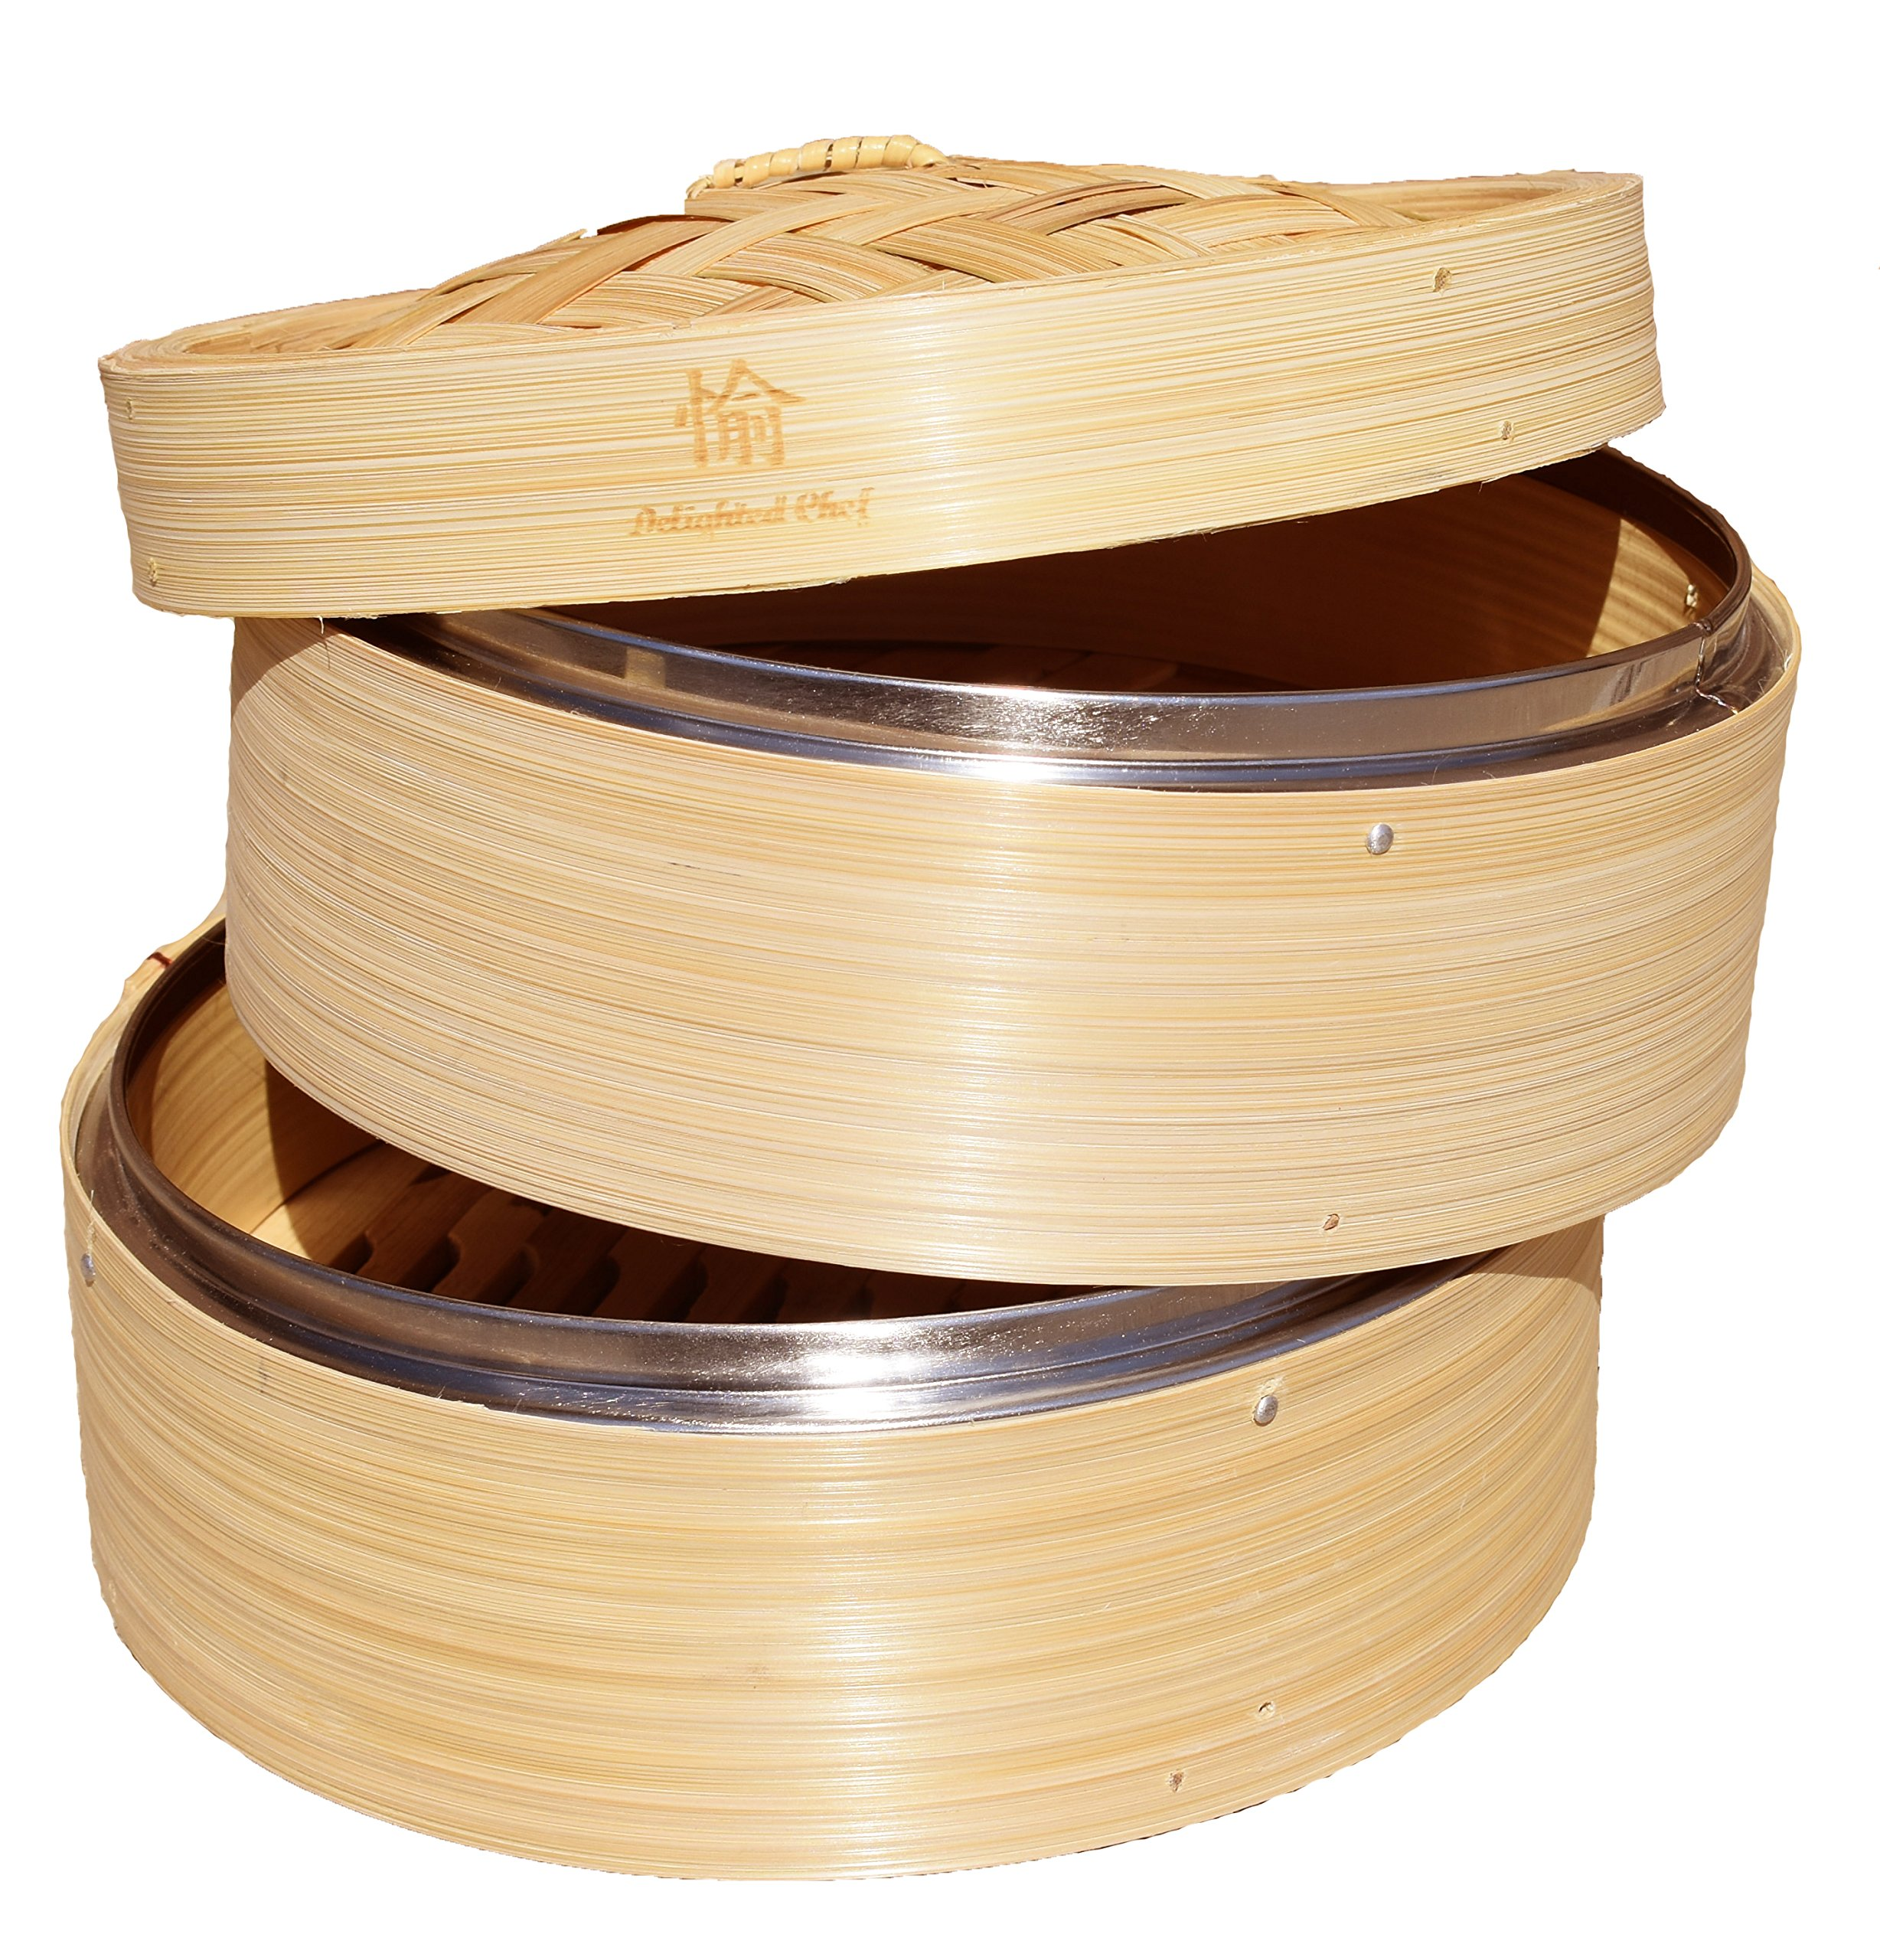 UPDATED MODEL FOR 2018! NEW AMAZINGLY DURABLE *8 Inch* Bamboo Steamer w/ Stainless Steel Rim/Lightweight Food/Bamboo Basket Fits Standard Size Pots/Asian Food Steamer/Free Storage Bag